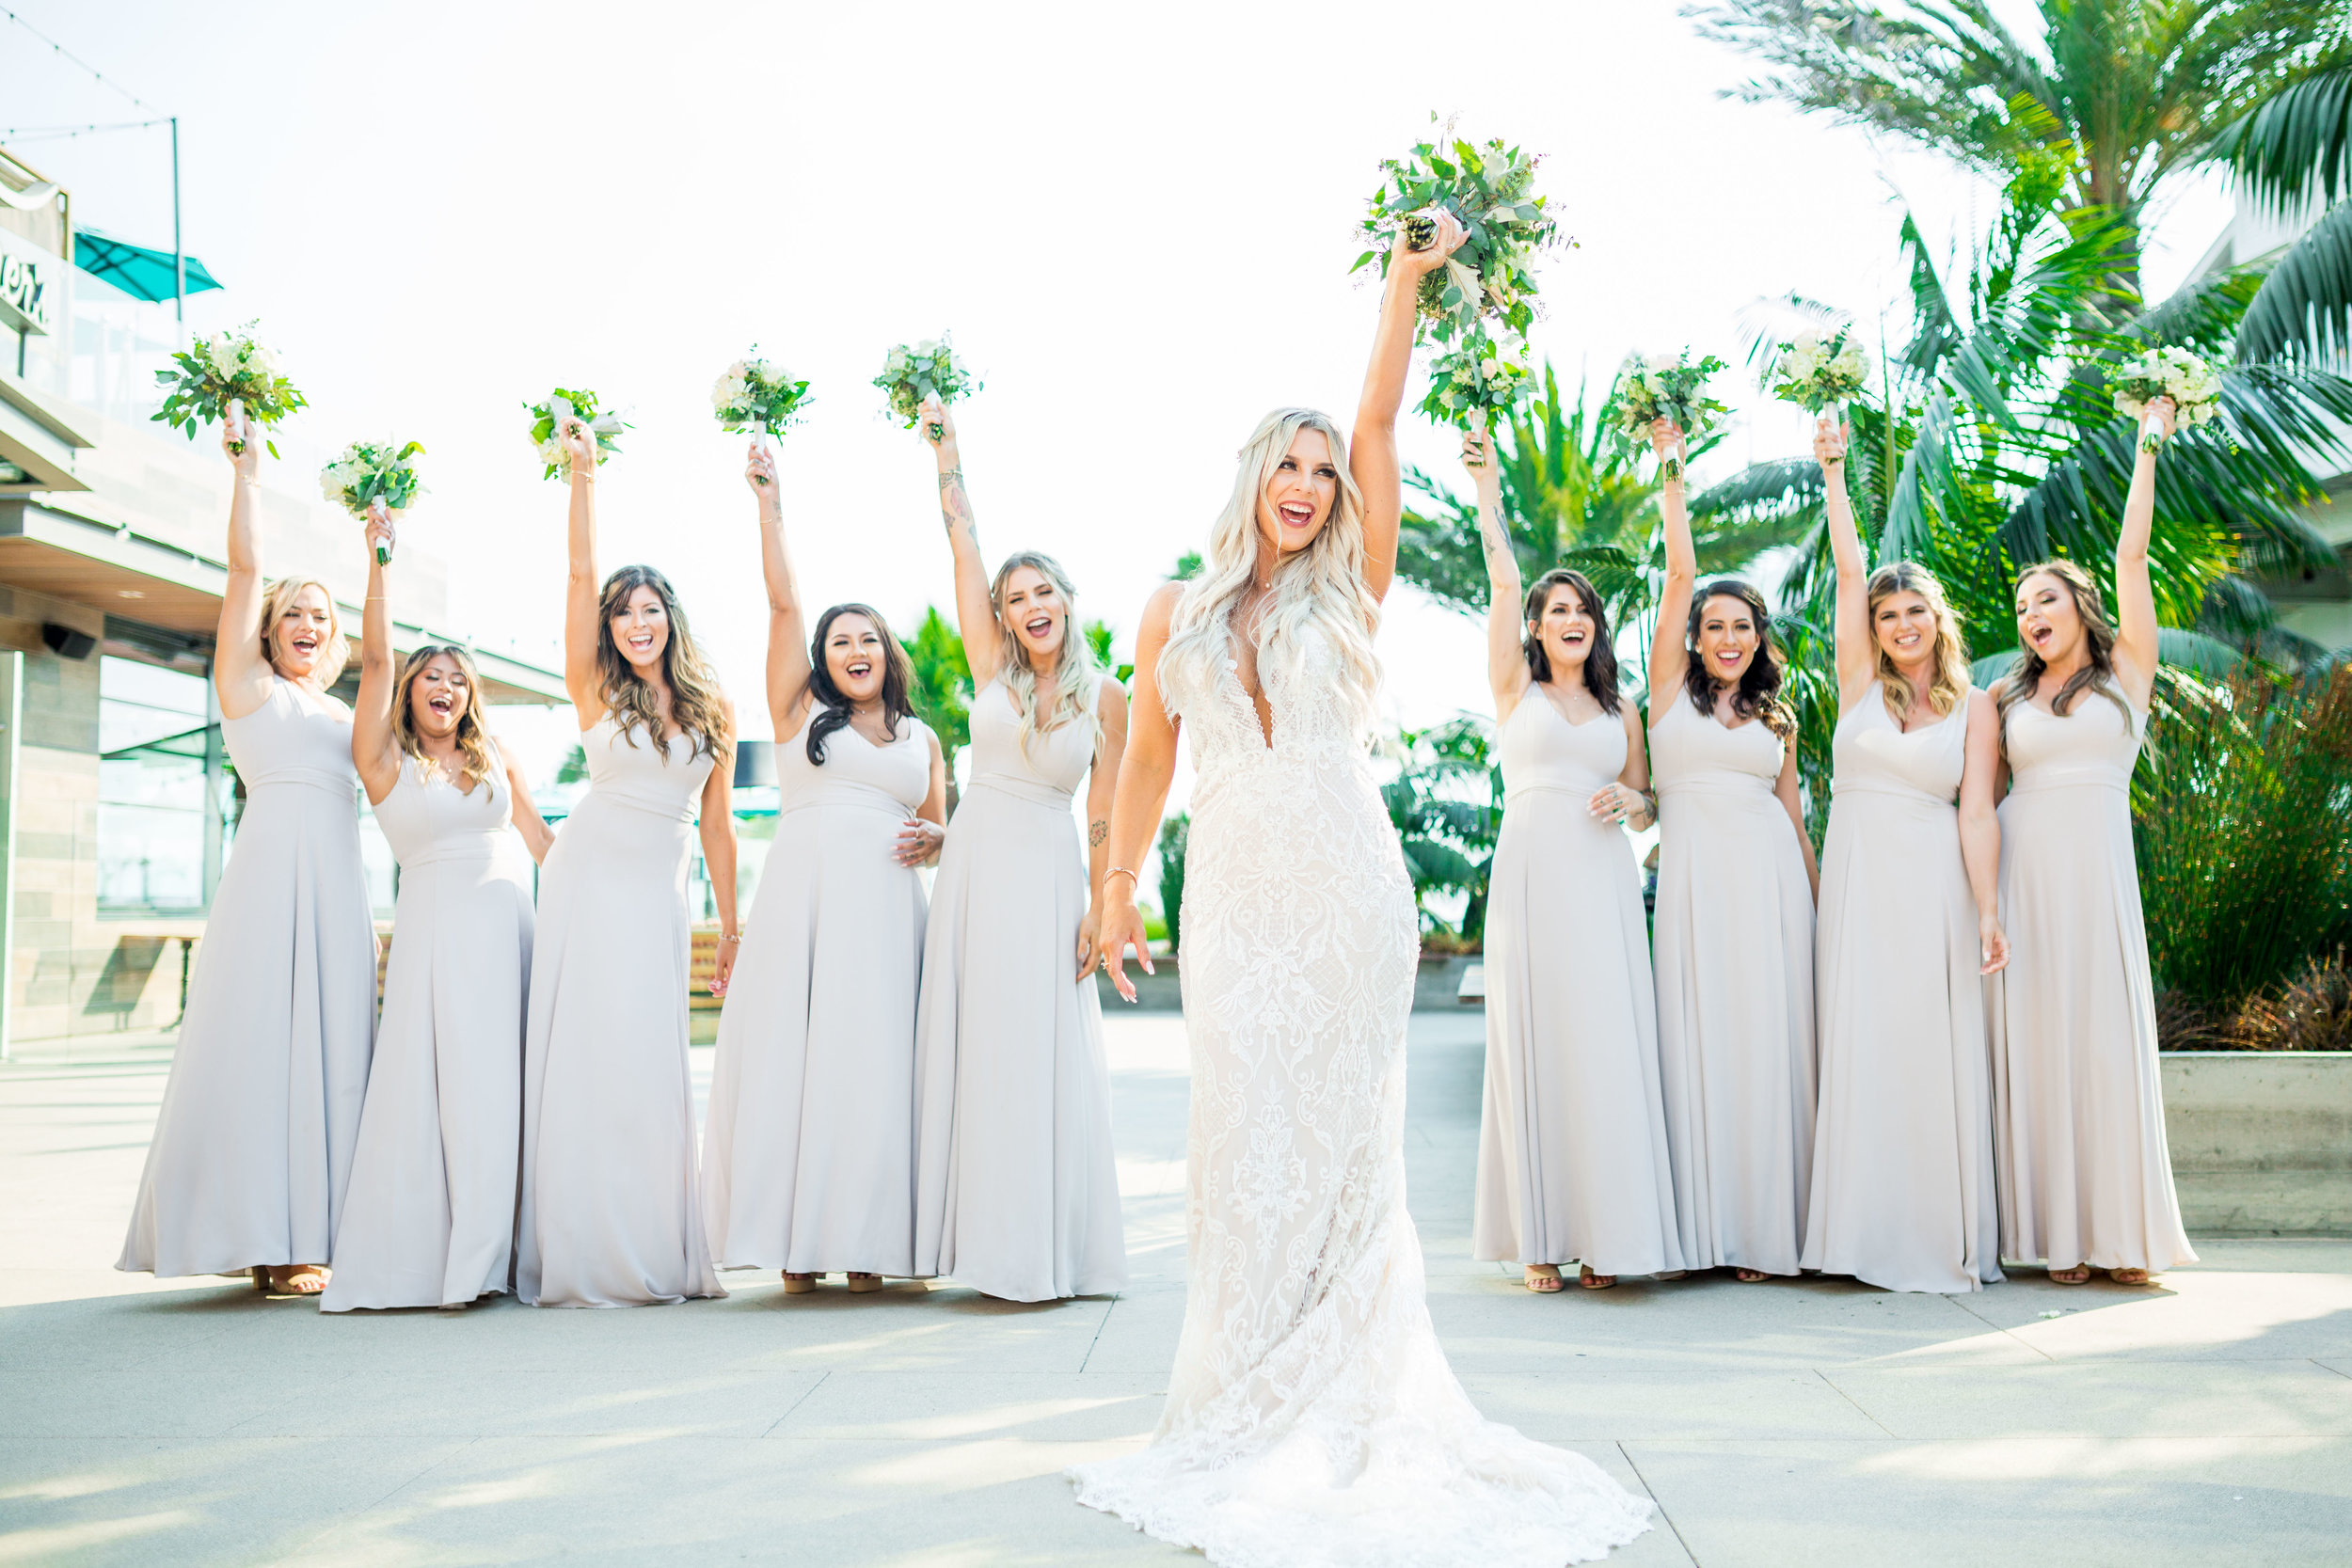 Huntington Beach Orange County Southern California Romantic Fun Rustic Elegant Wedding Engagement Photographer Photography by Glass Woods Media 9.jpg